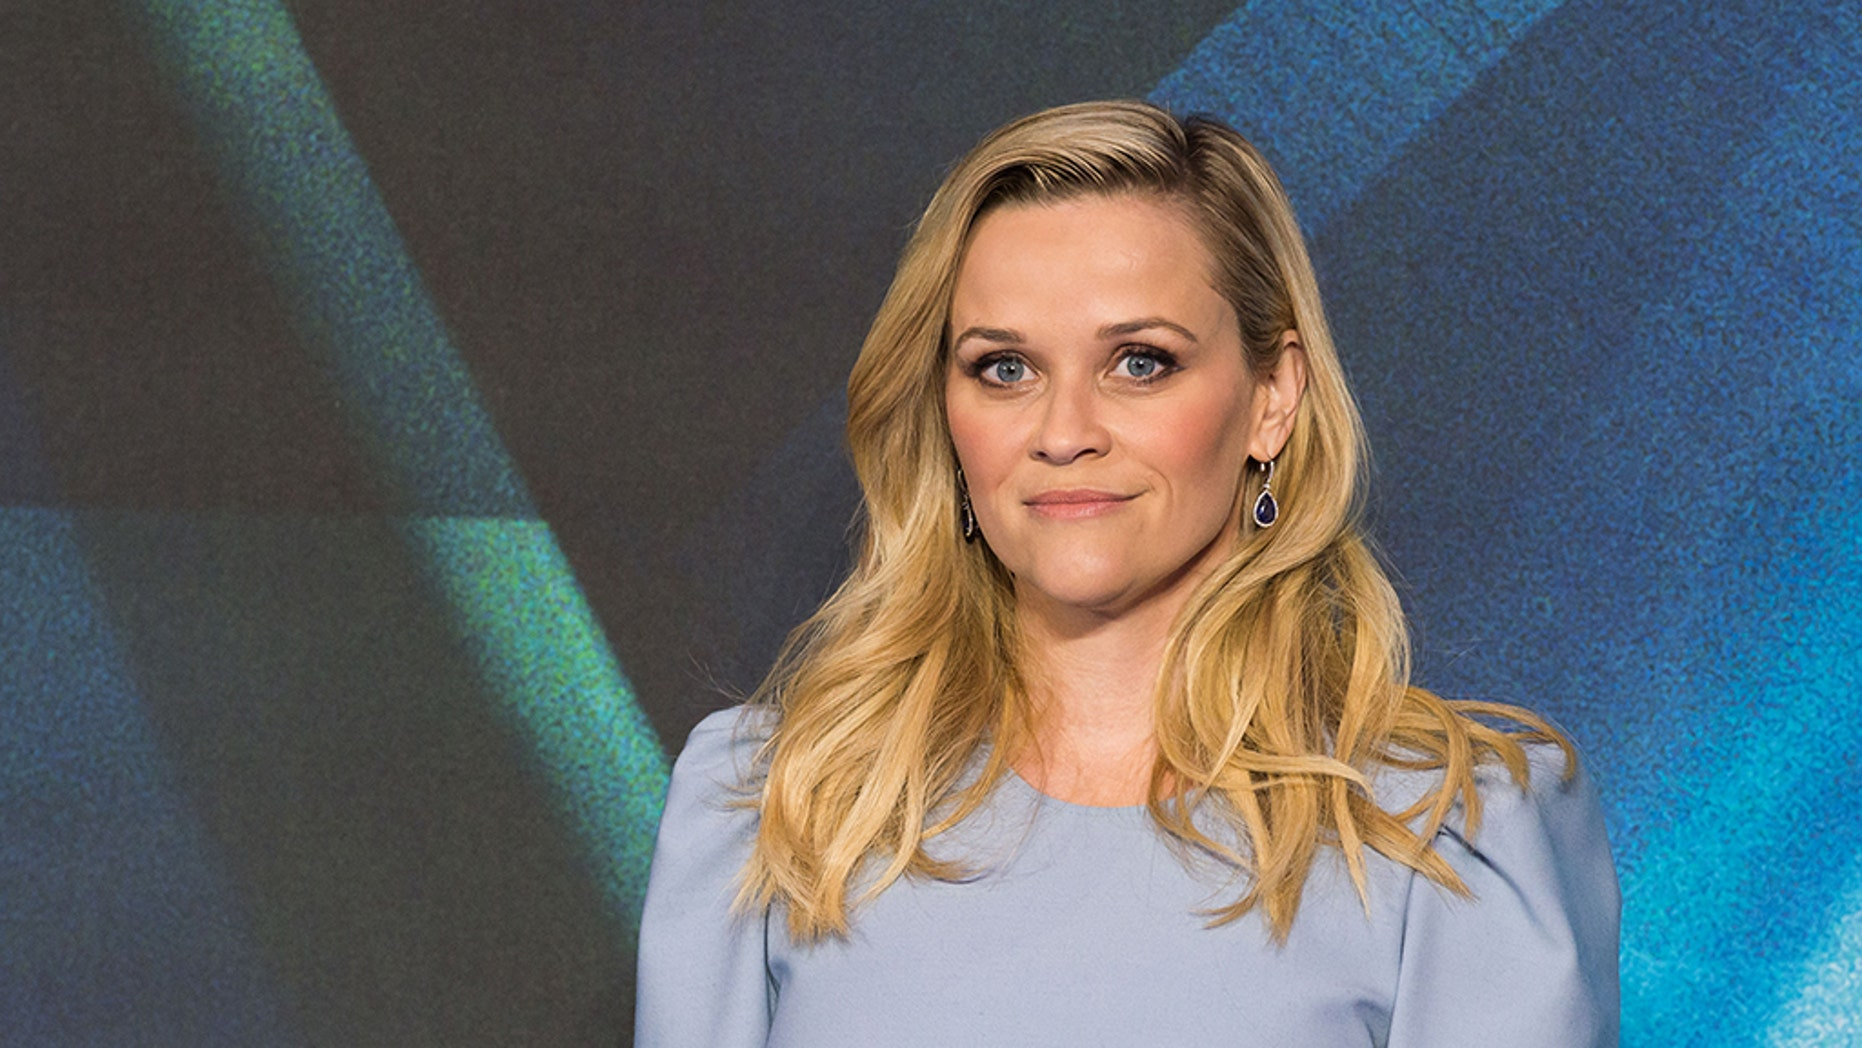 Reese Witherspoon was caught on camera hurling an ice cream cone at Meryl Streep on Aug. 1, 2018.